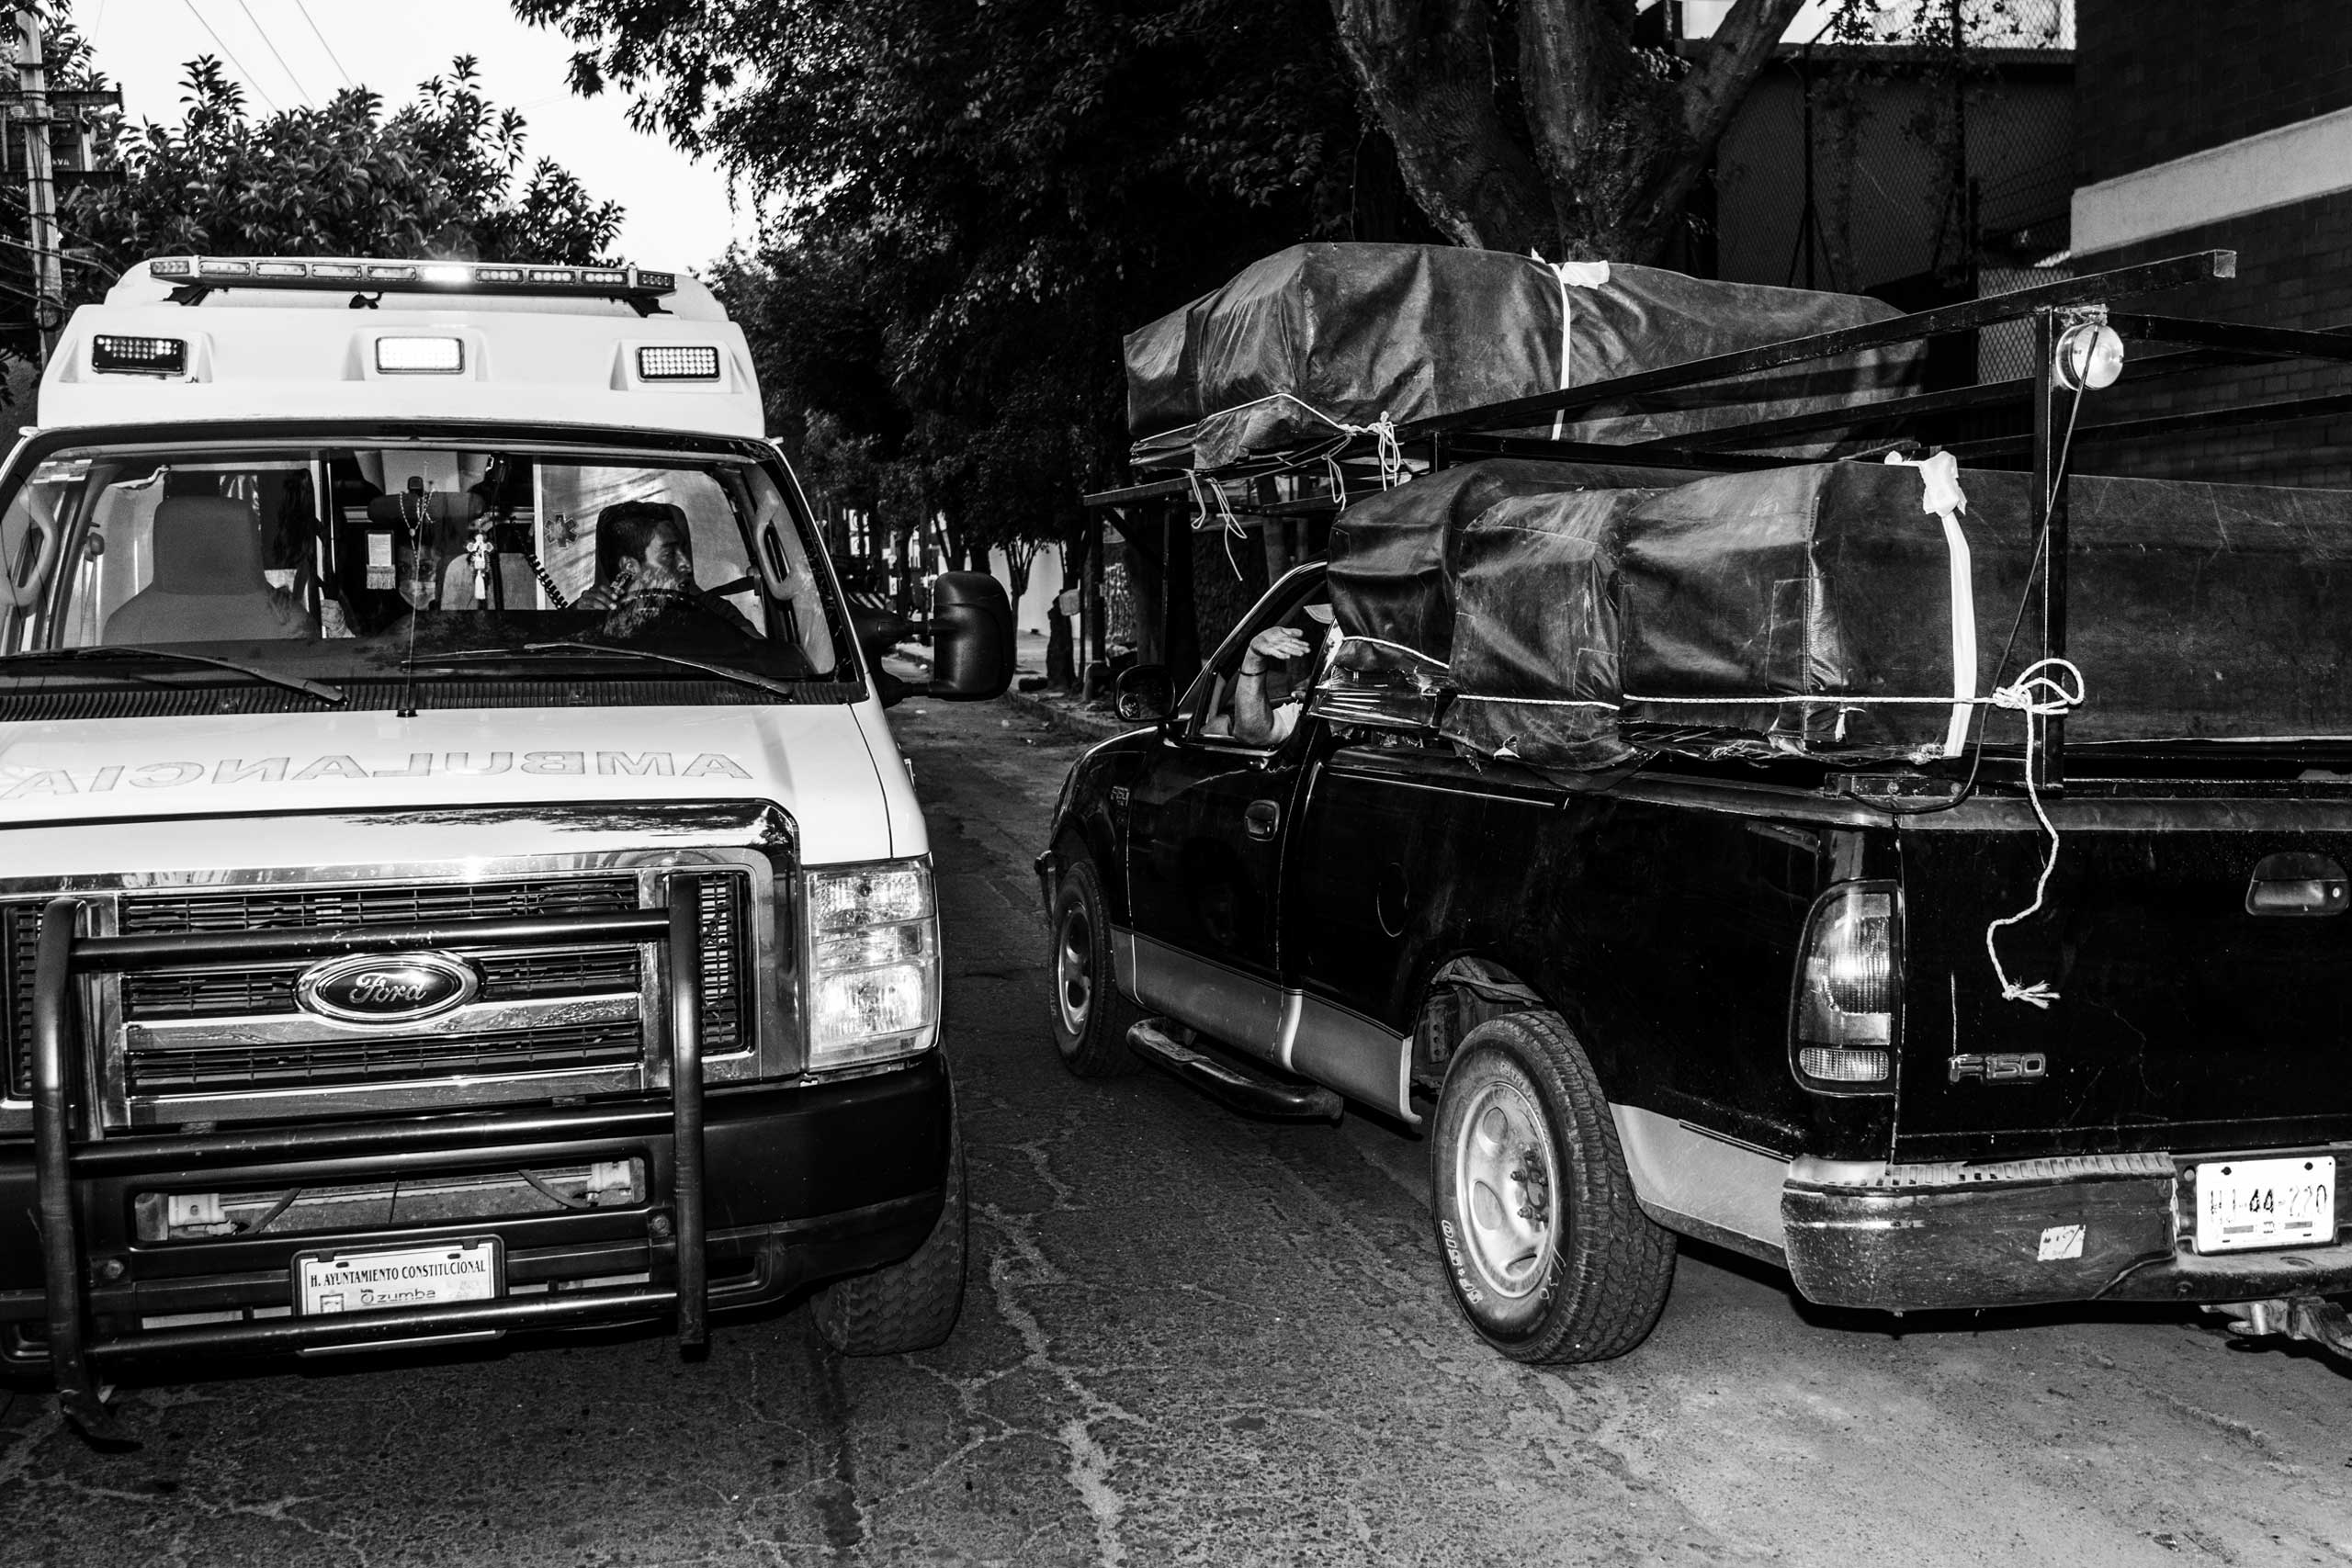 An itinerant seller of coffins talks to an ambulance driver, gathering information about funerals stores in need of coffins. March 13, 2016.